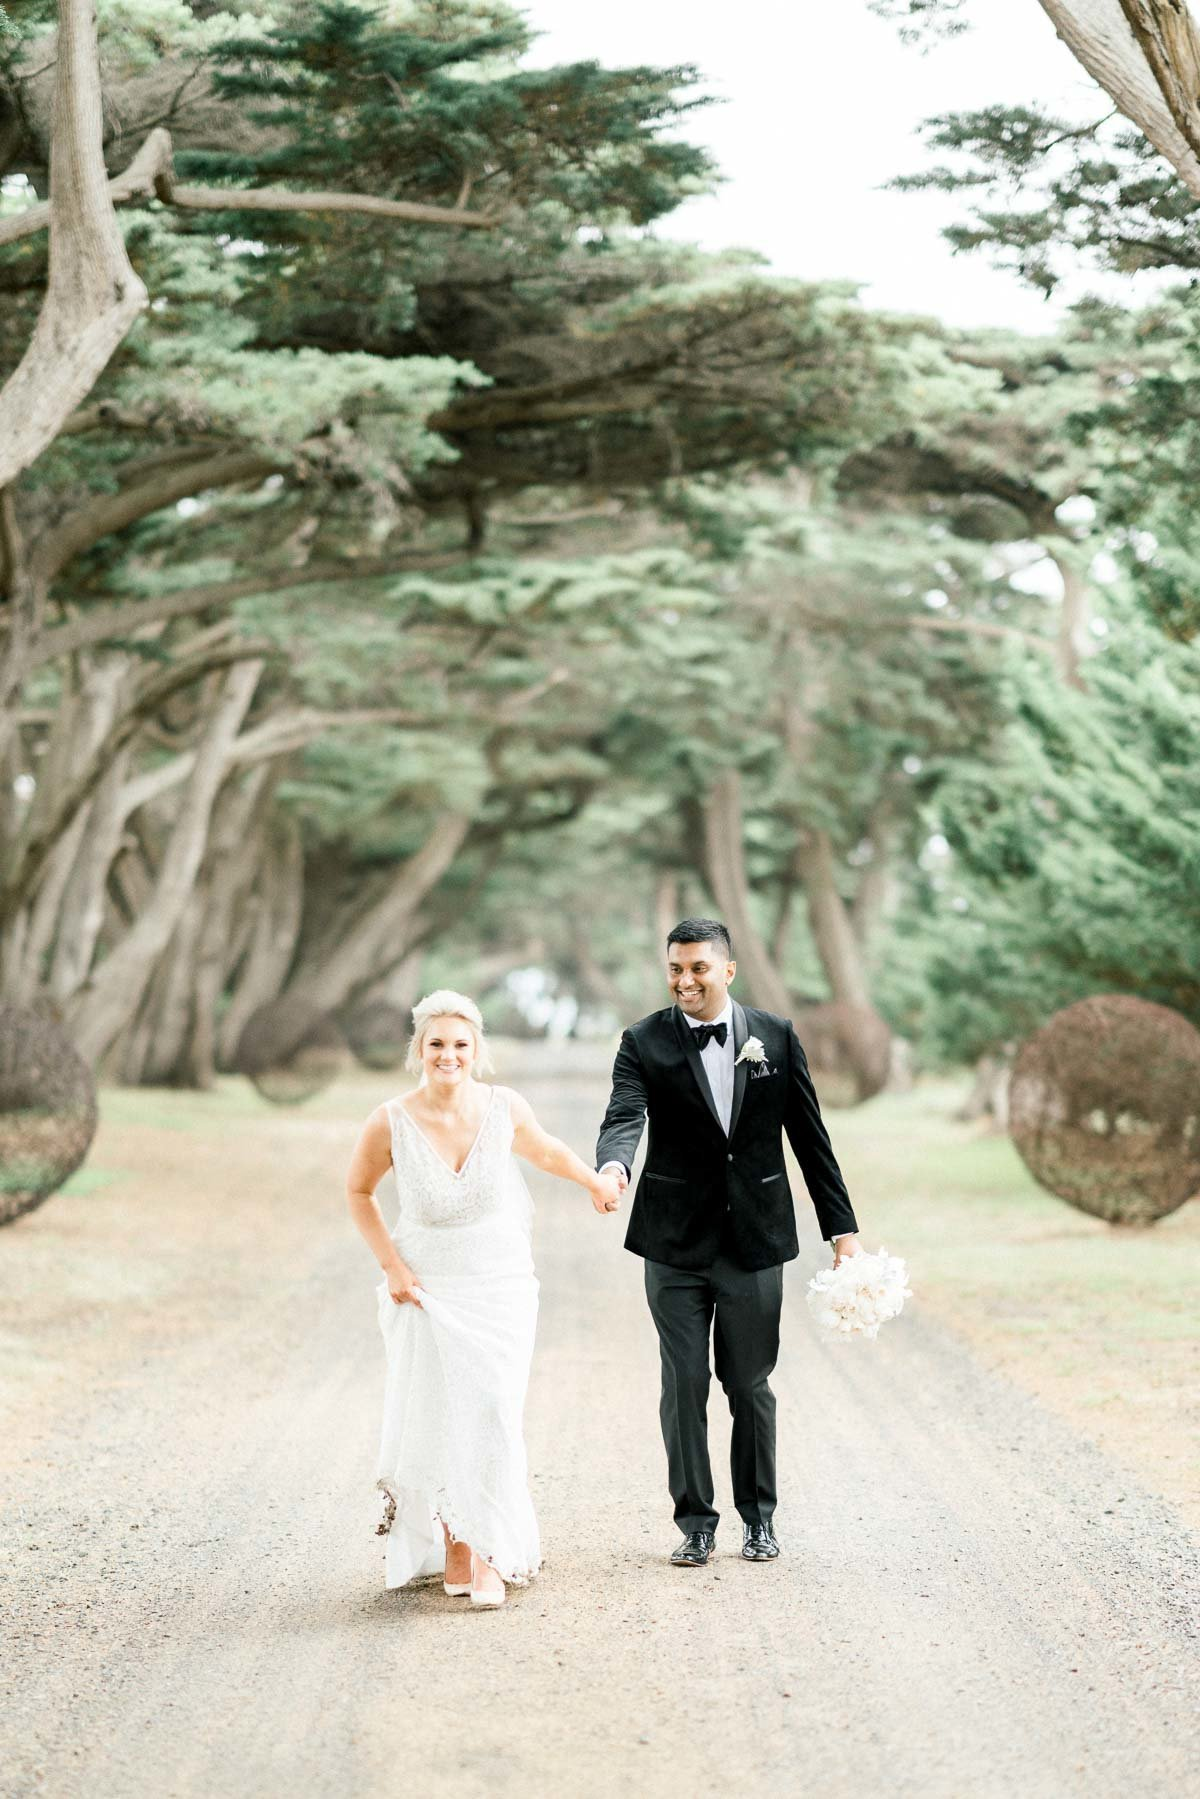 trenavin-chapel-phillip-island-wedding-heart+soul-weddings-sally-sean-01526